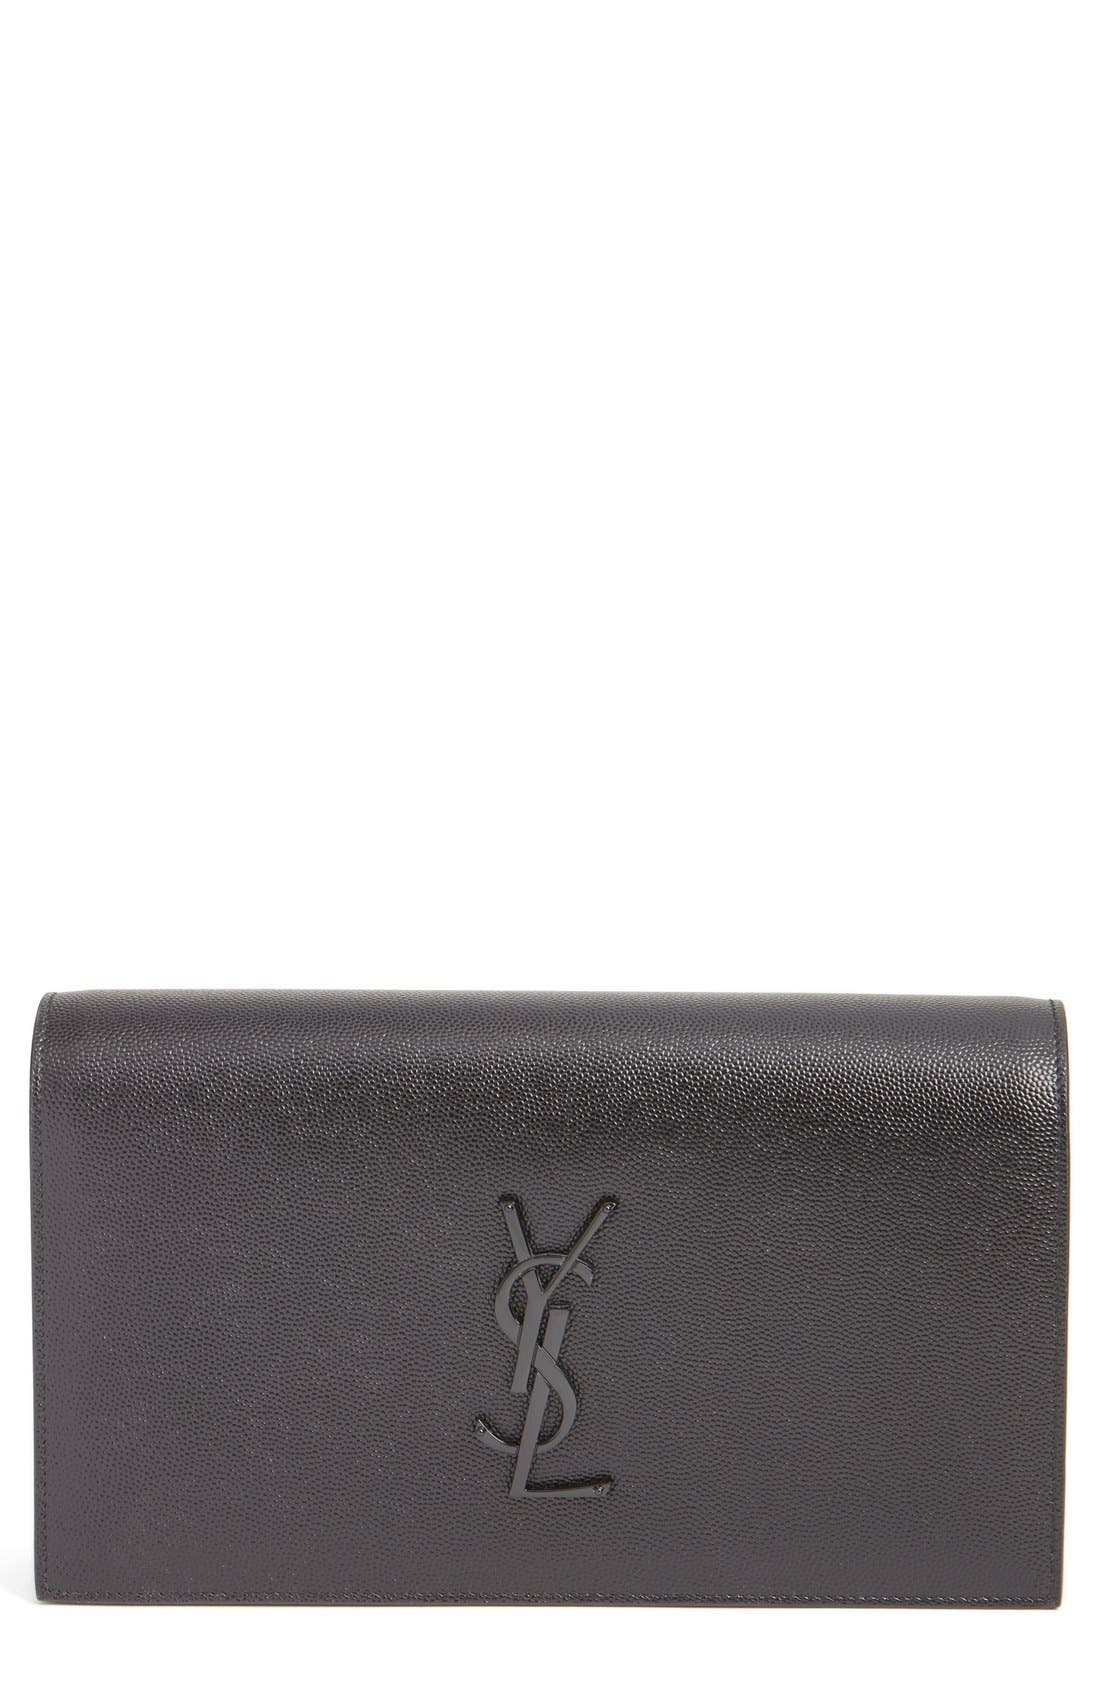 SAINT LAURENT Kate Pebbled Calfskin Leather Clutch